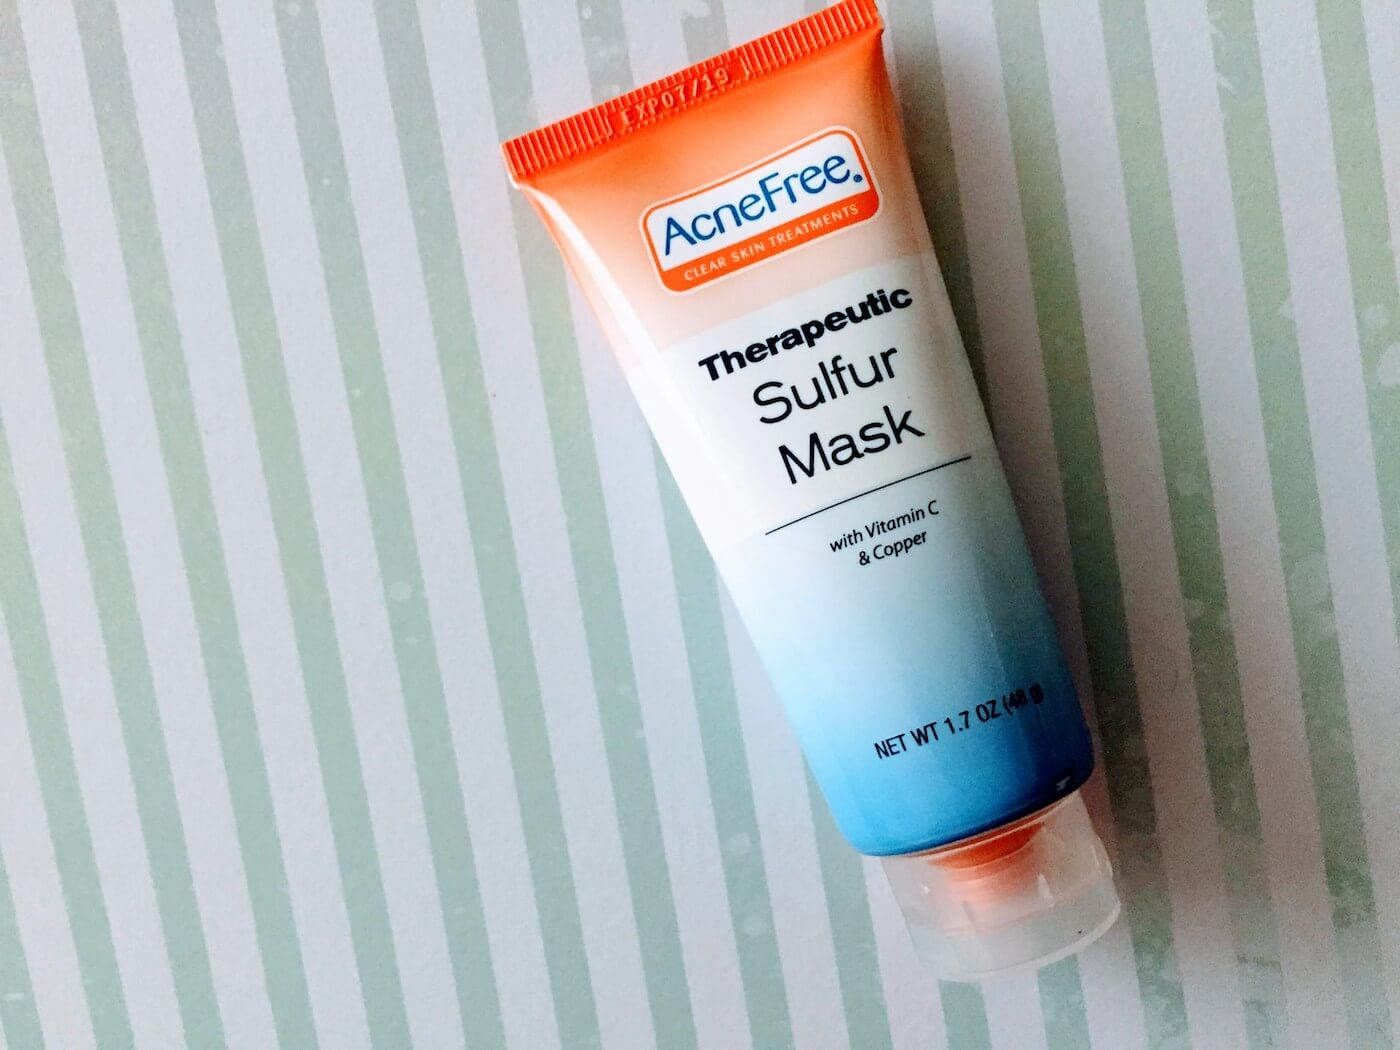 AcneFree Sulfur Mask Review